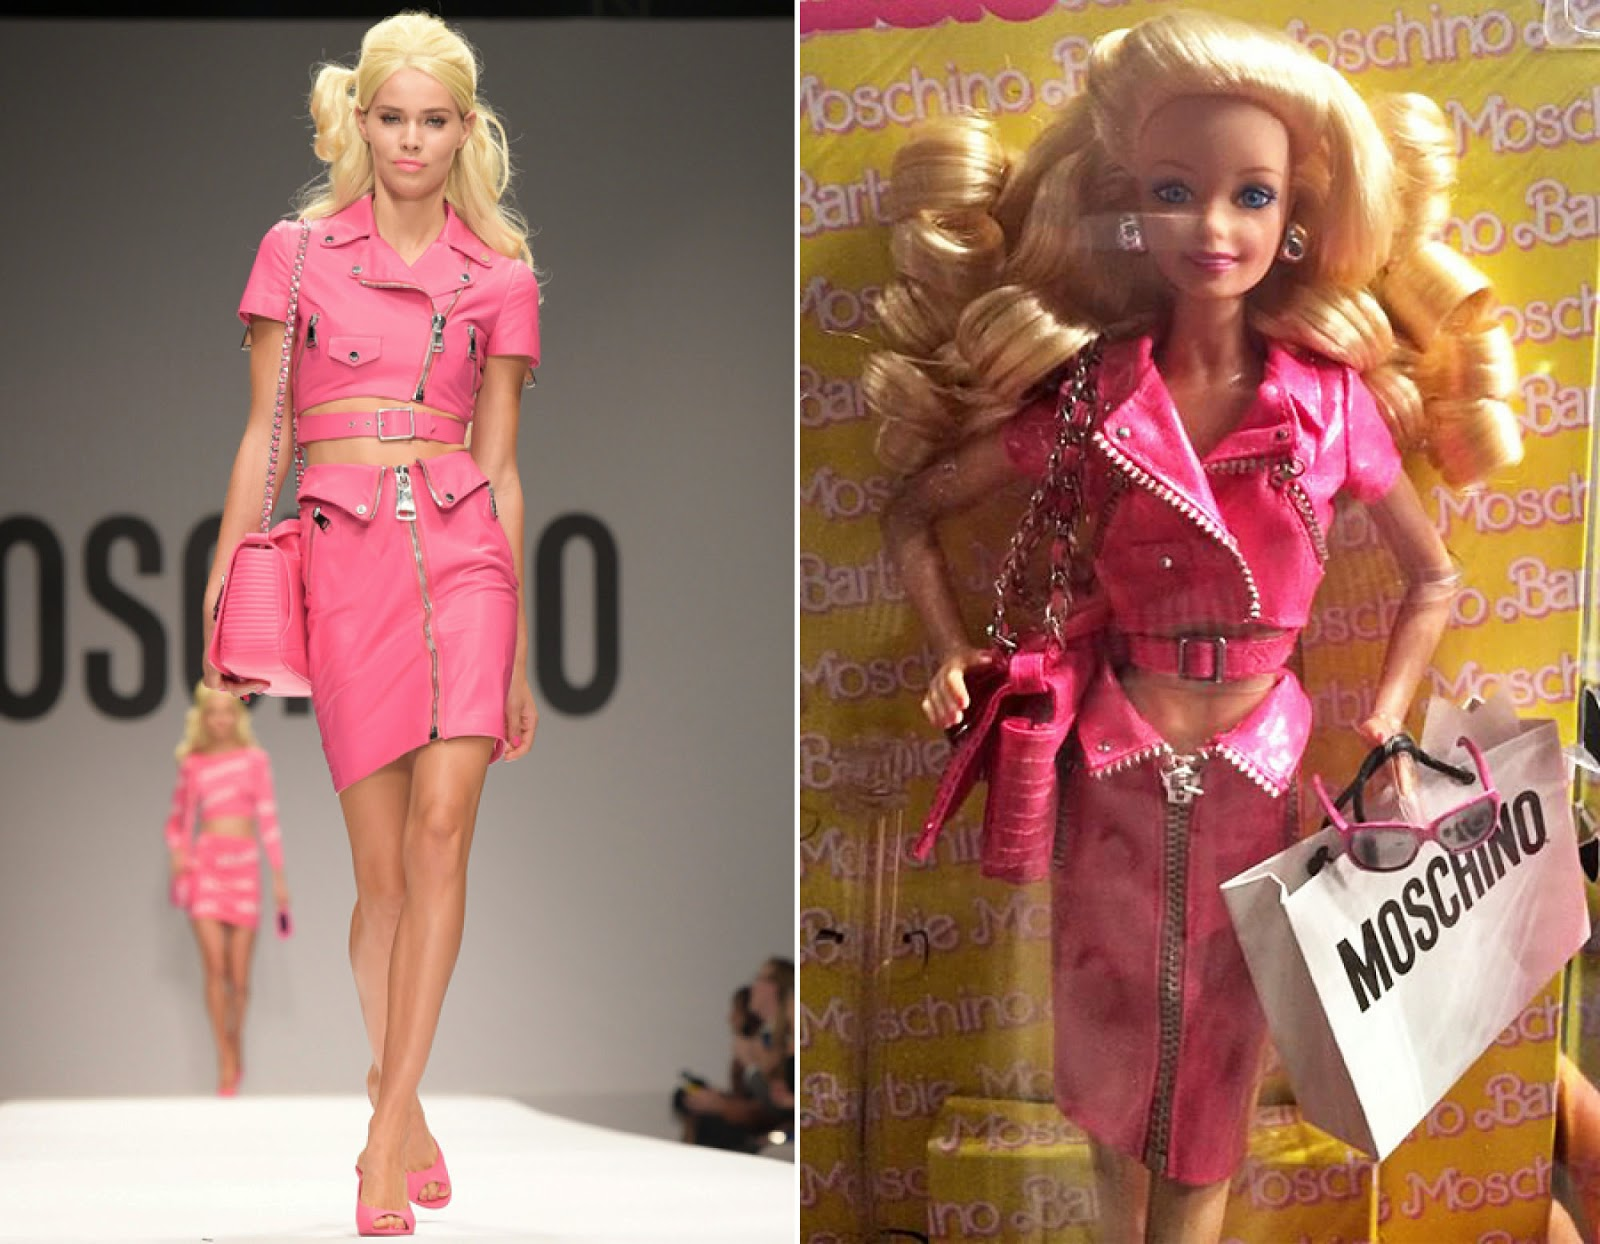 Collecting Fashion Dolls By Terri Gold Barbie Inspired Moschino Runway Show In Milan